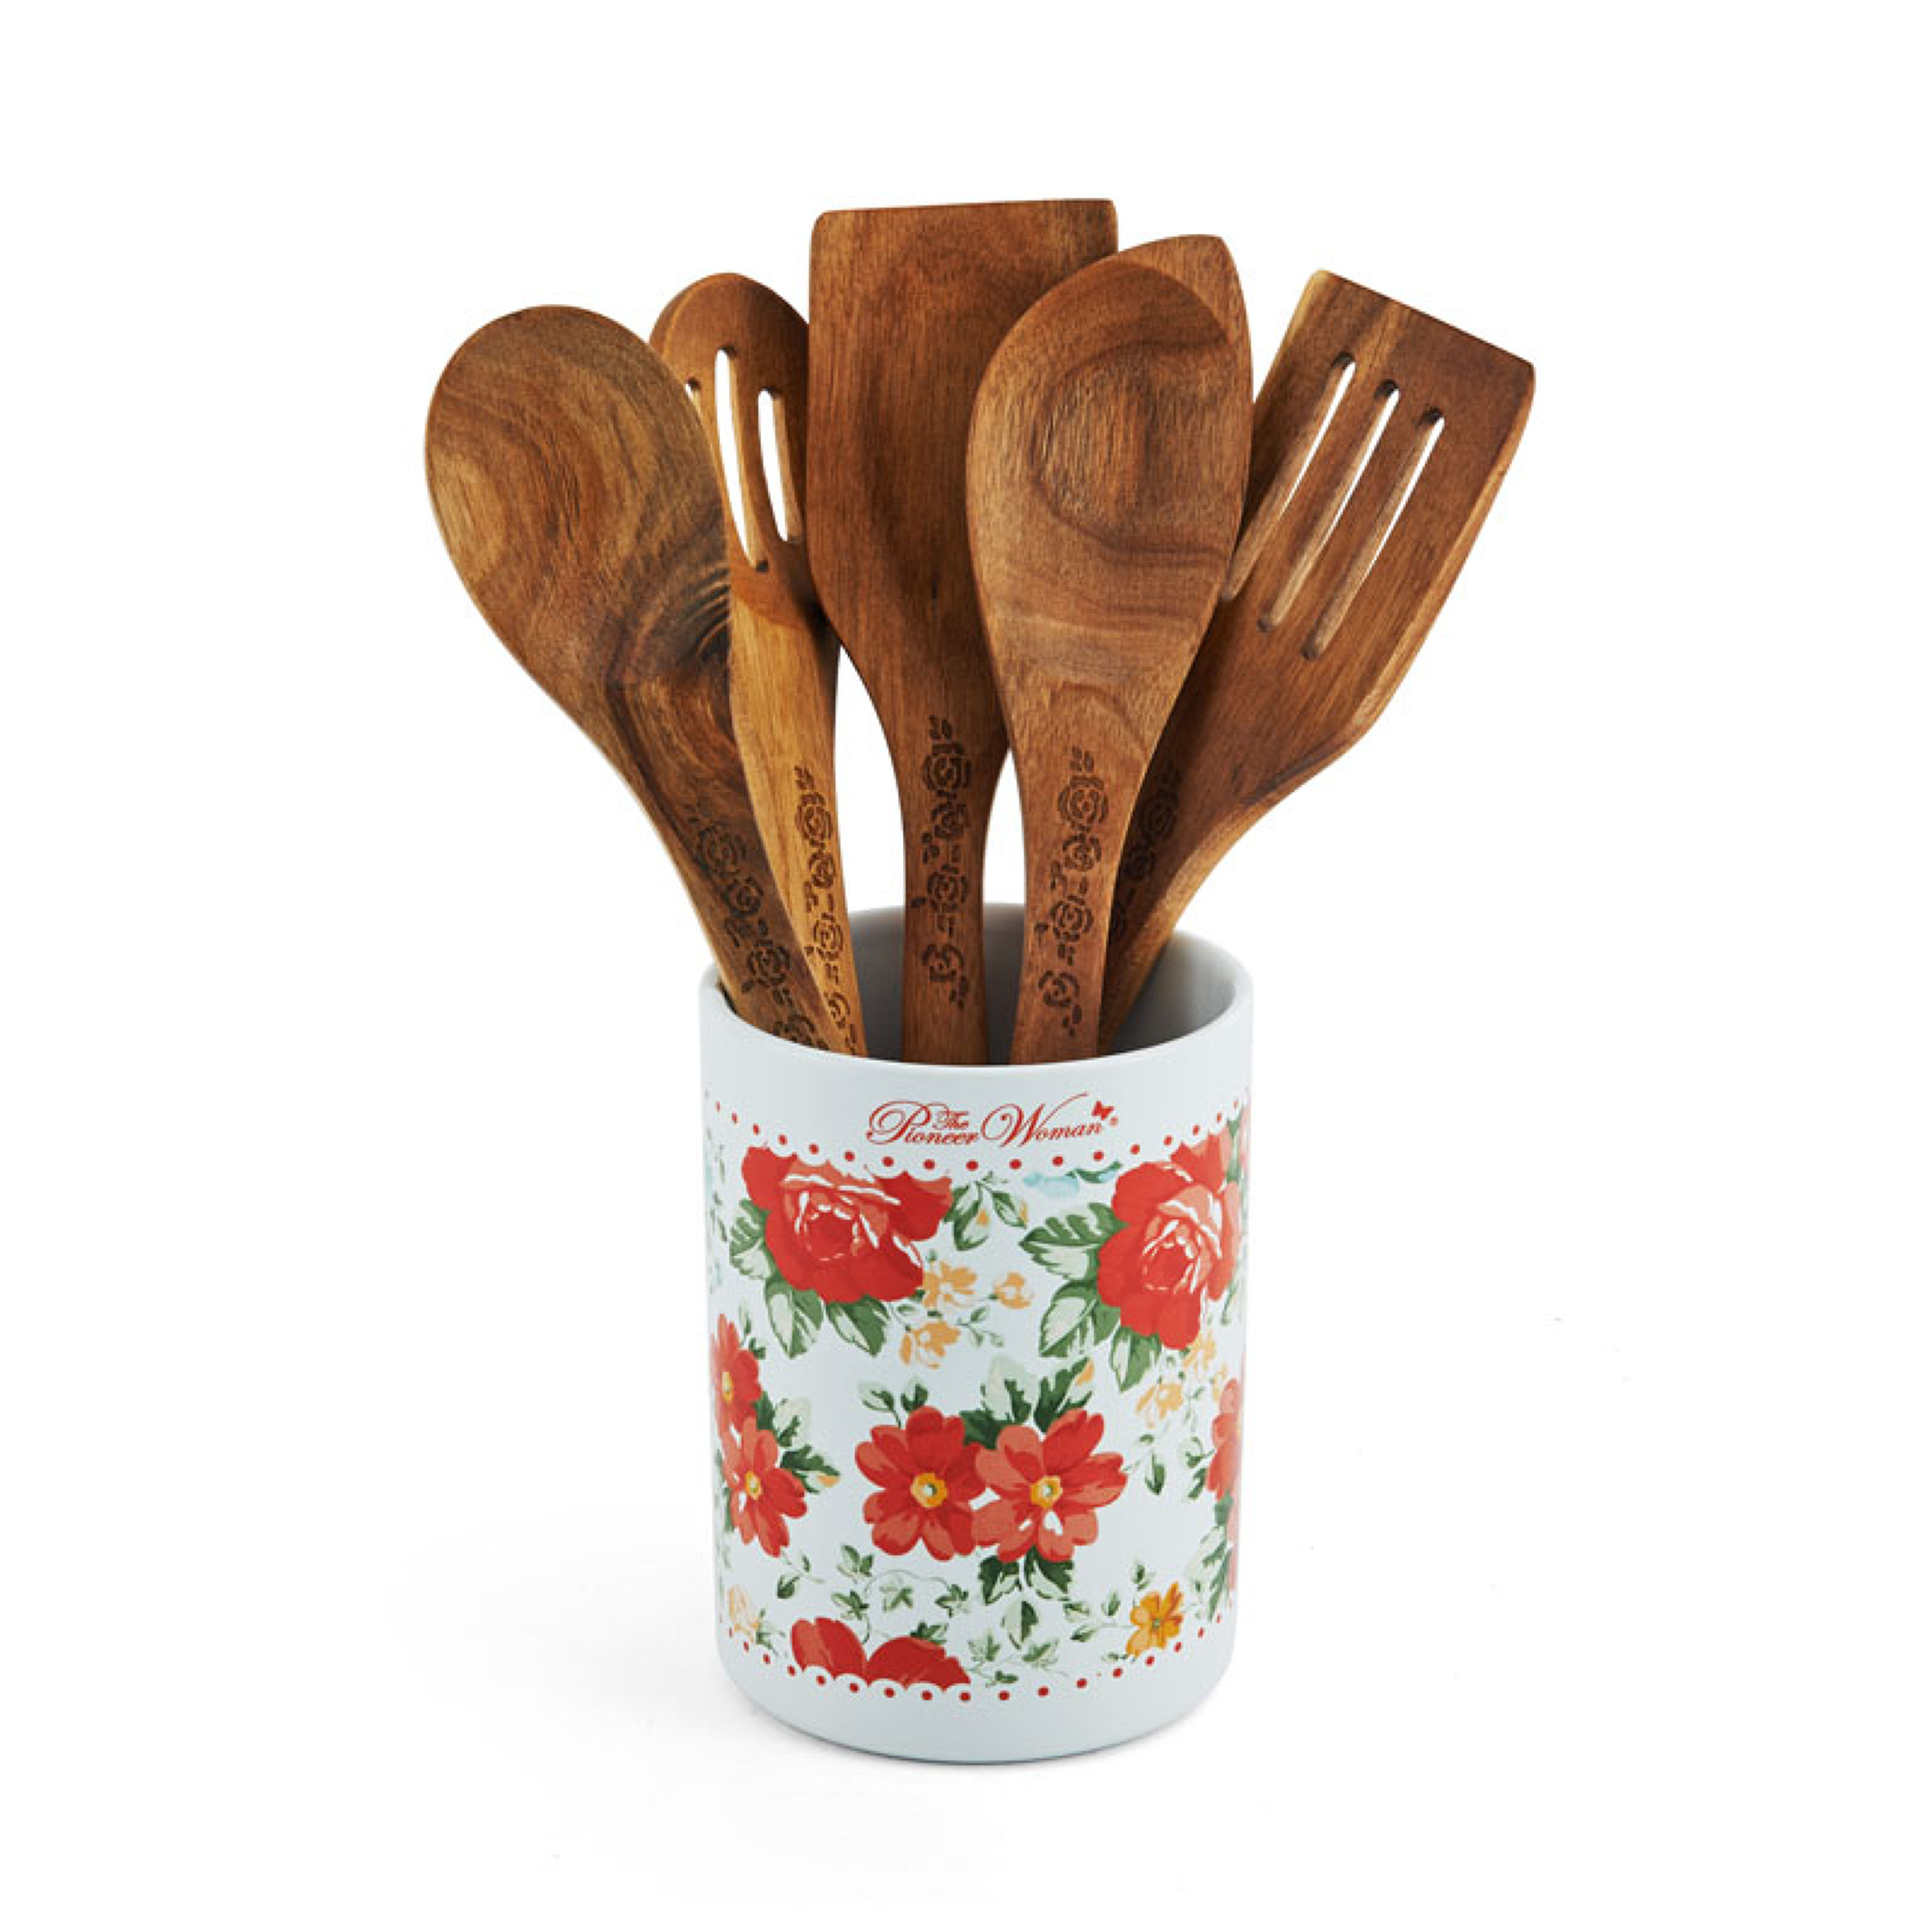 The Pioneer Woman 6 Piece Crock and Wooden Tool Set in Vintage Floral